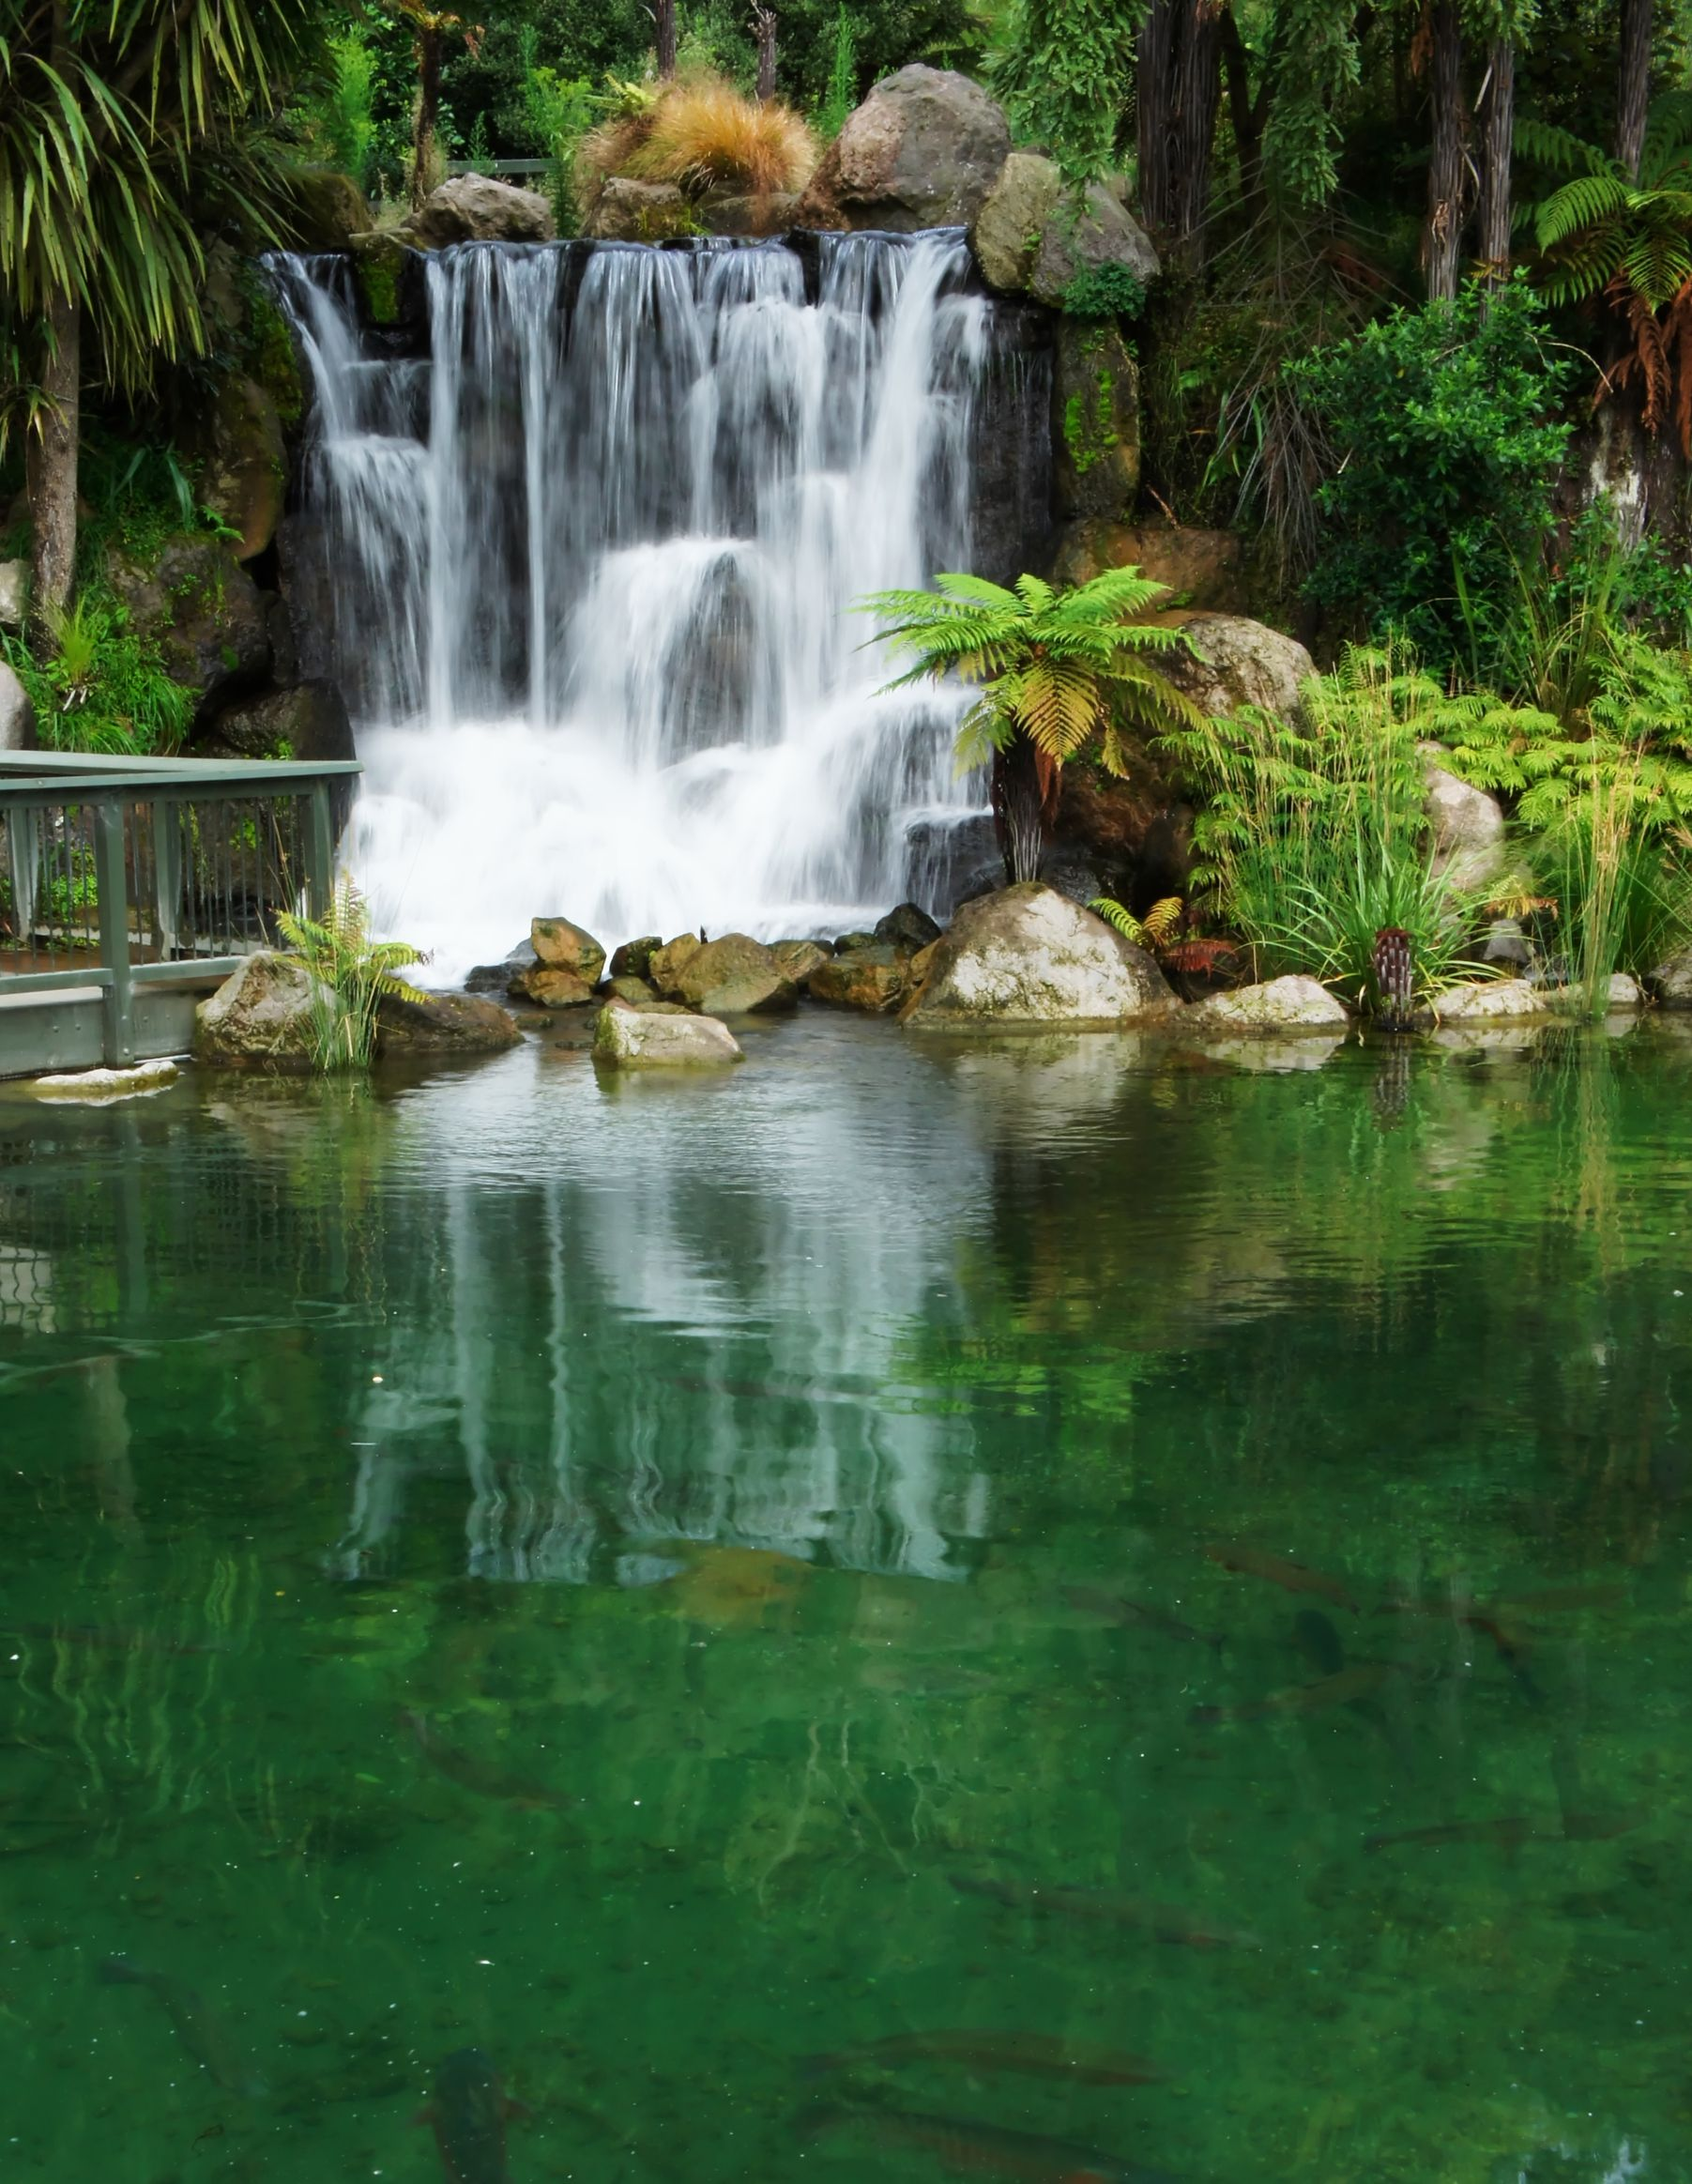 new zealand spring waterfall 123rf